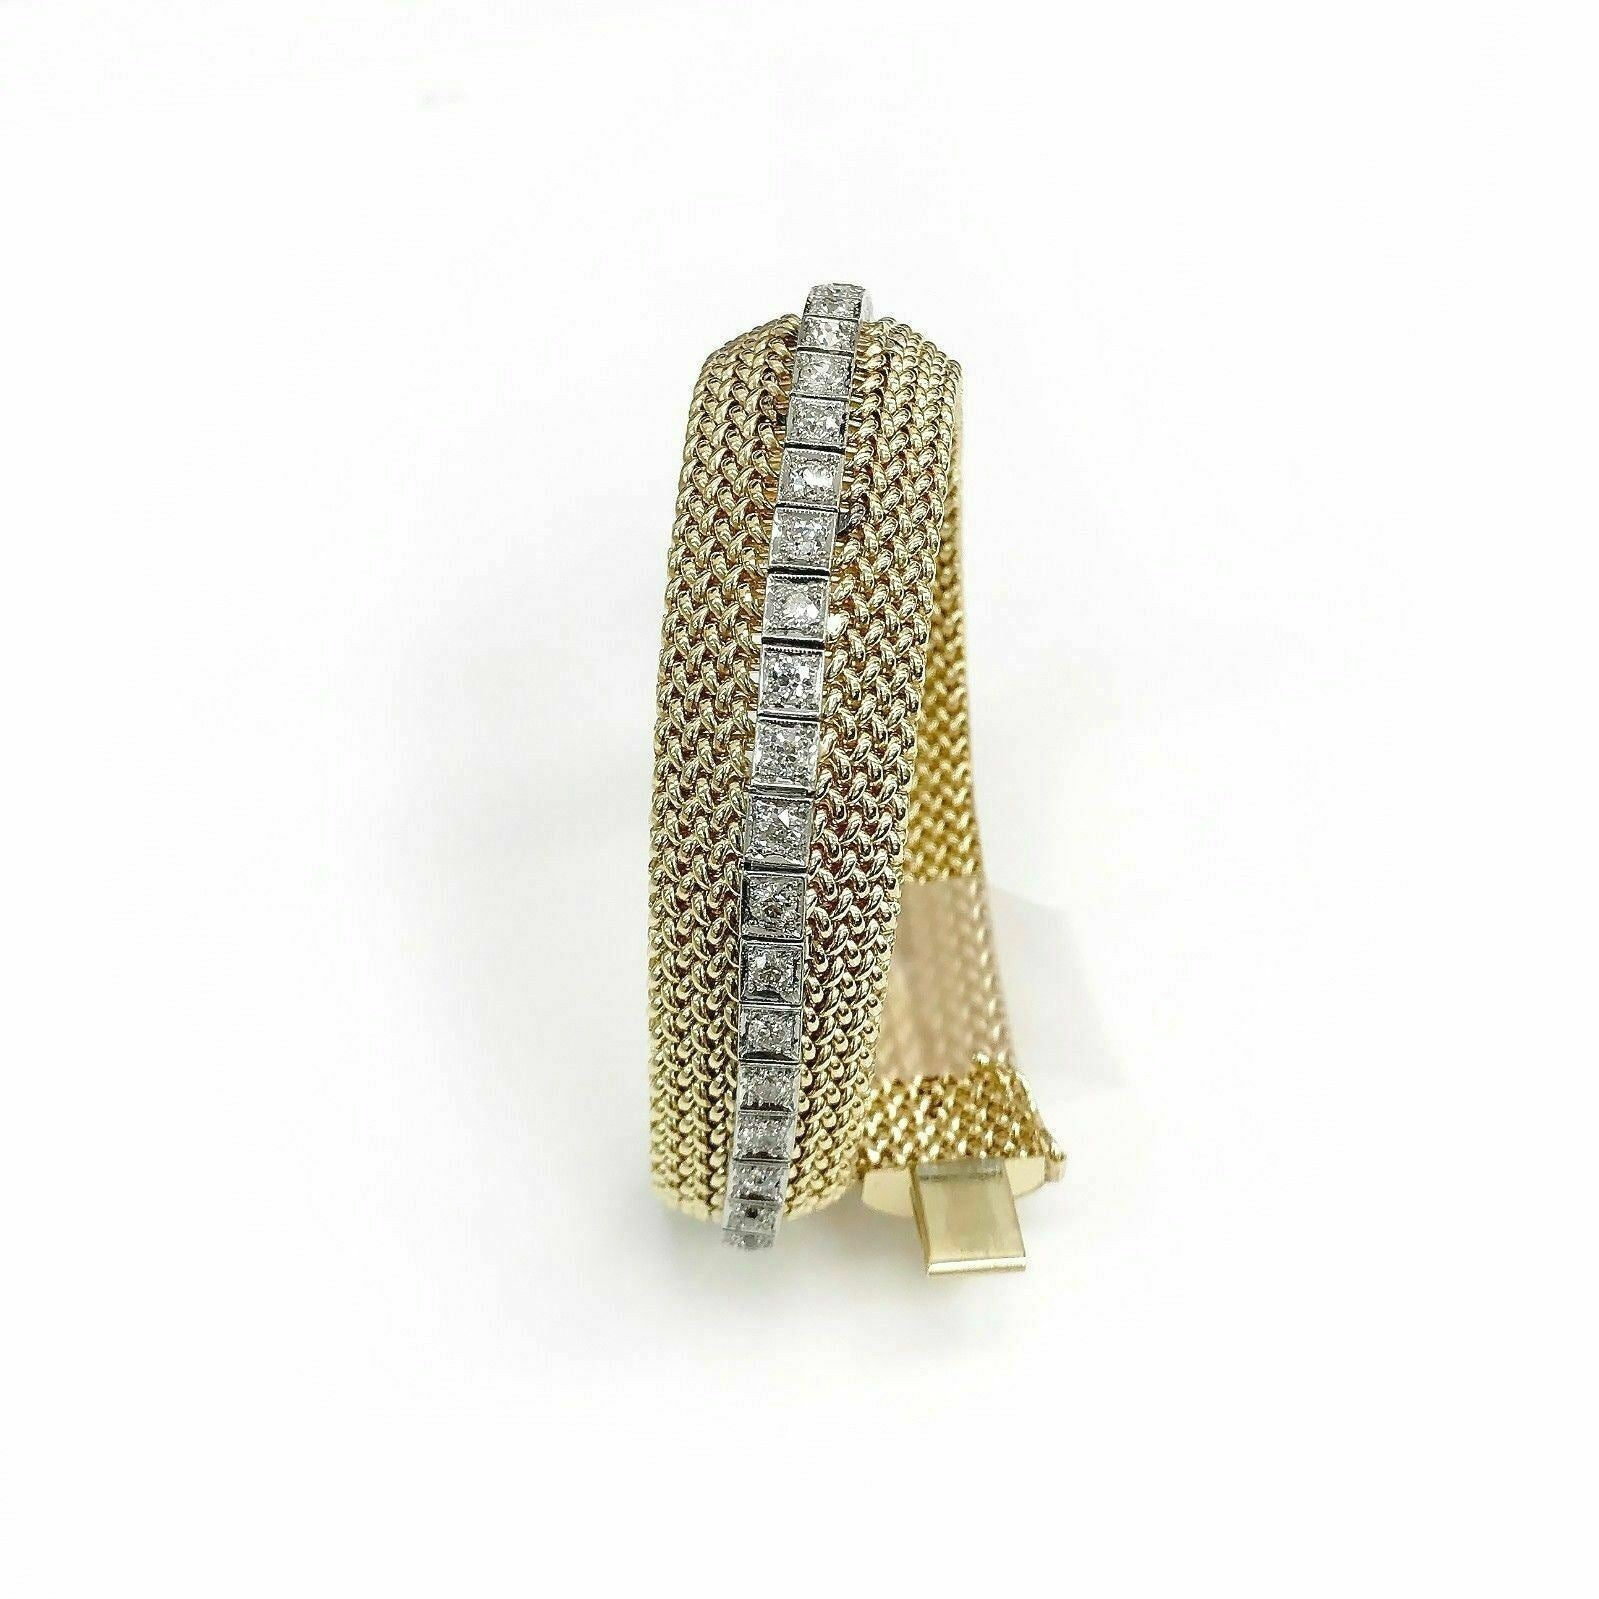 1970's Mesh 5.12 Carats Old Euro Diamond Bracelet Solid 14K 2 Tone Gold 60 Grams